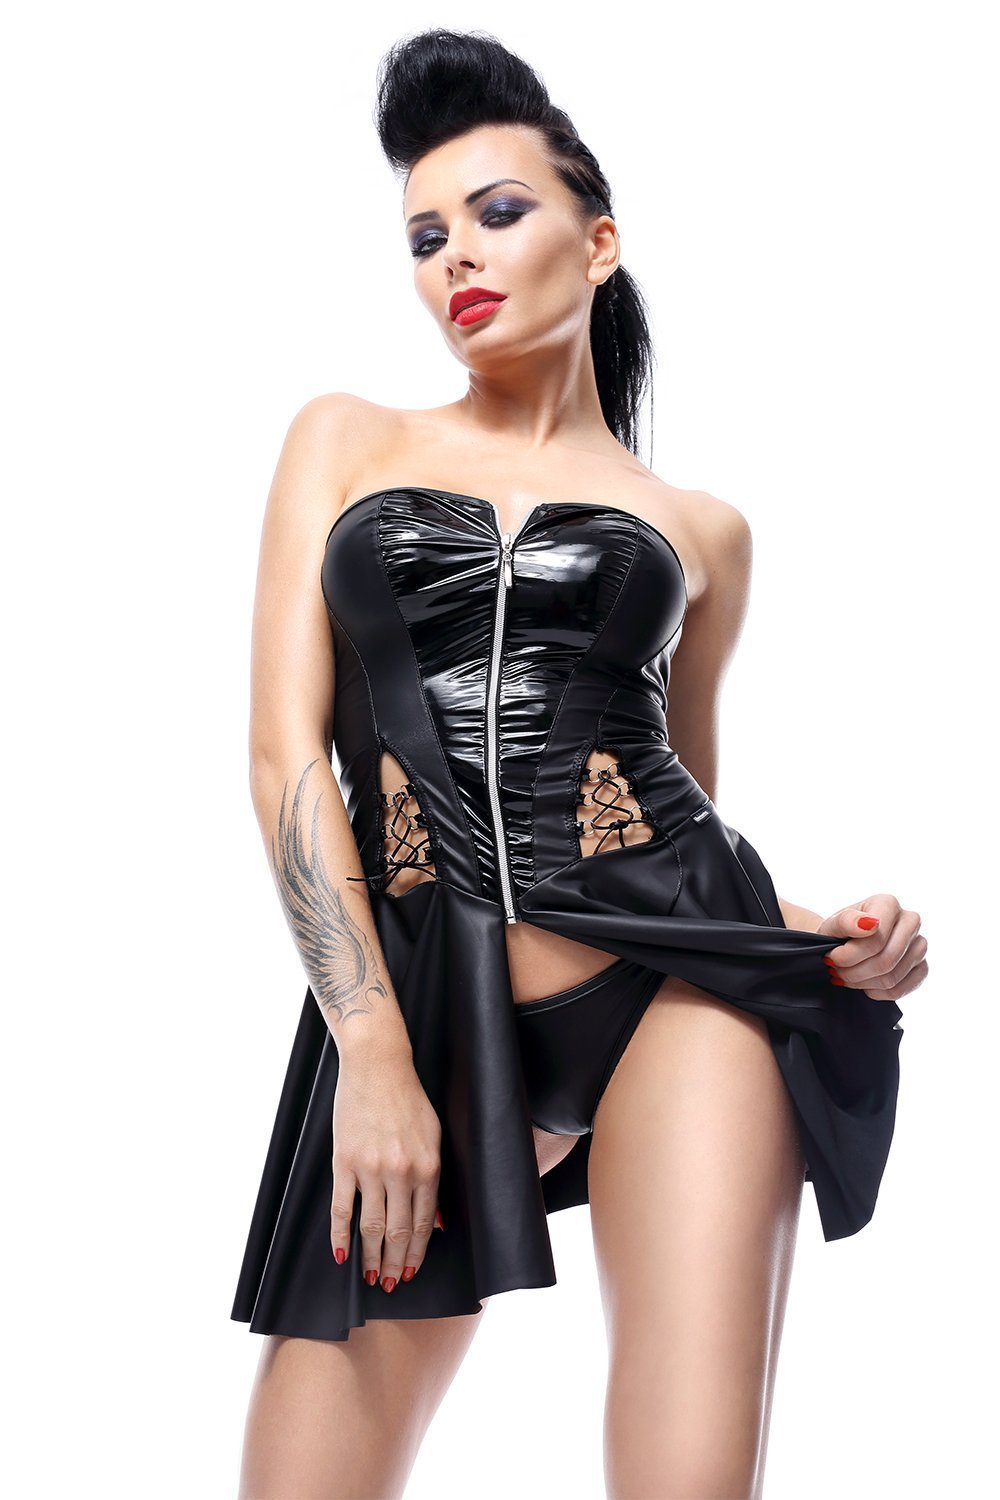 demoniq Dress UK 8 / Black Rita by Demoniq Hard Candy Collection